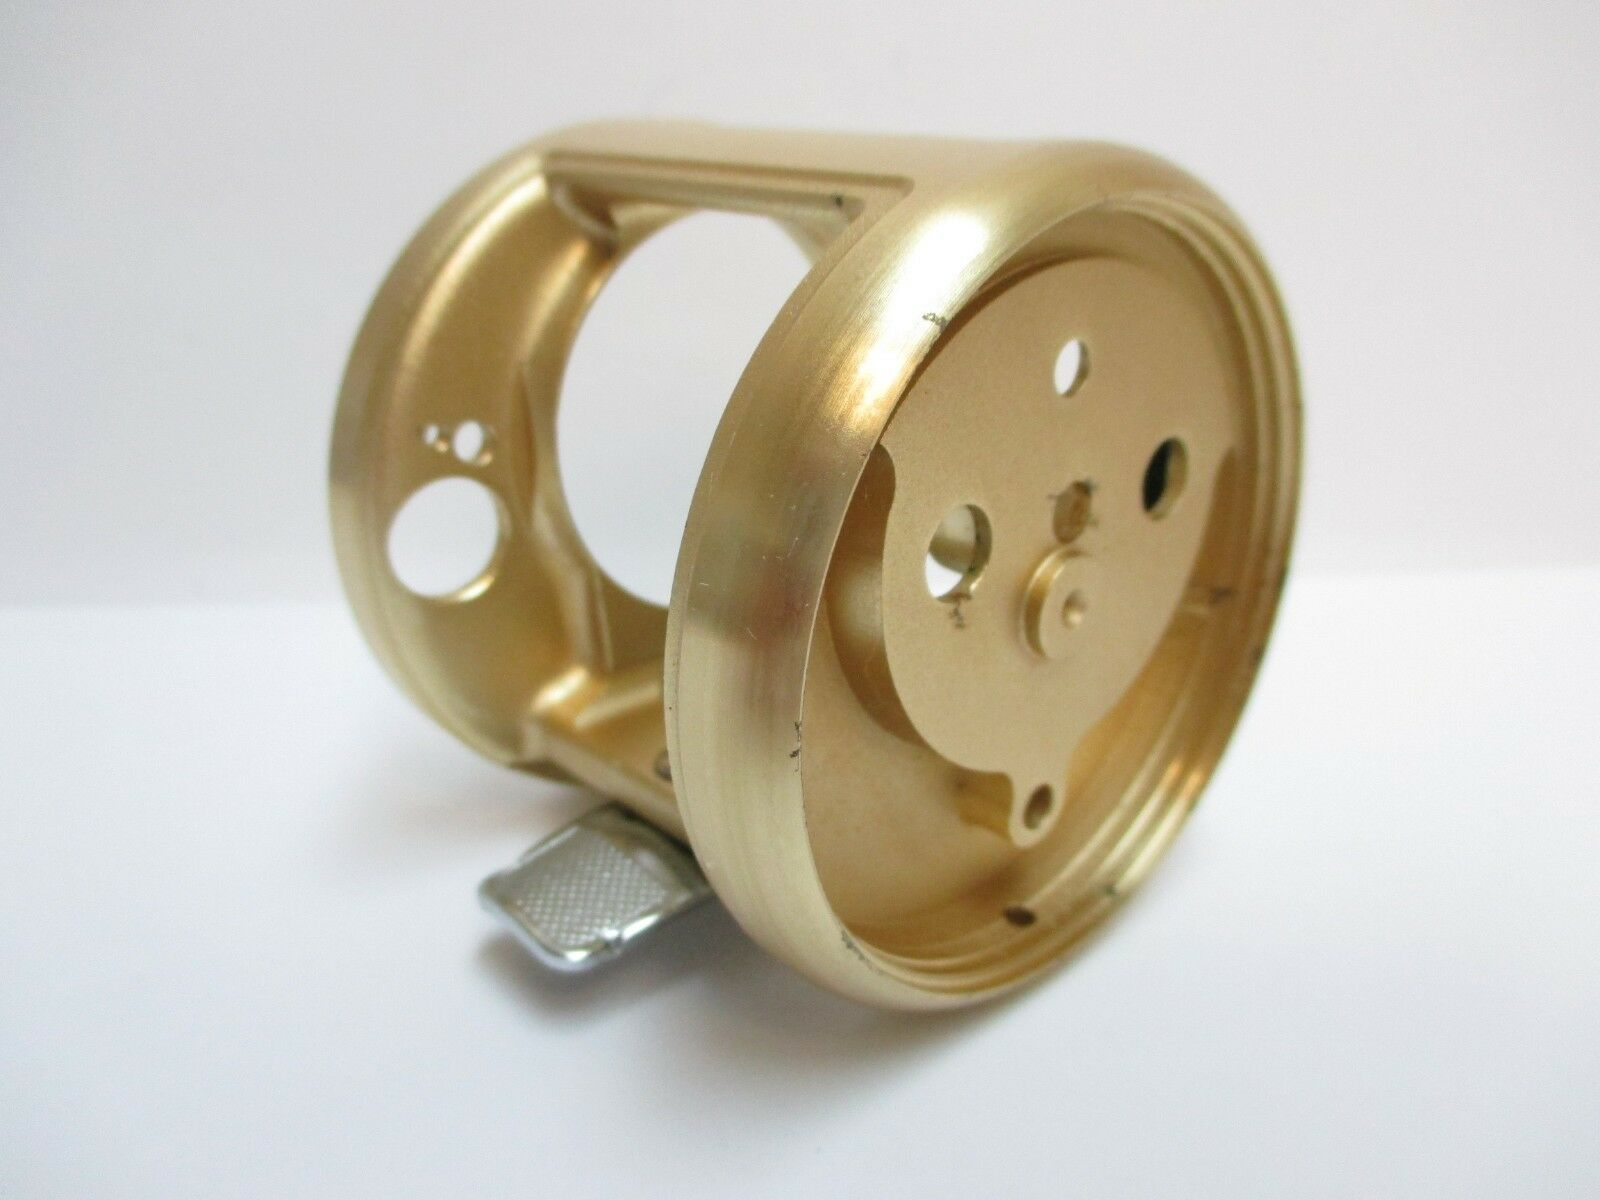 SHIMANO BAITCASTING REEL PART - BNT1914 Calcutta 150 - Frame -Imperfect  A